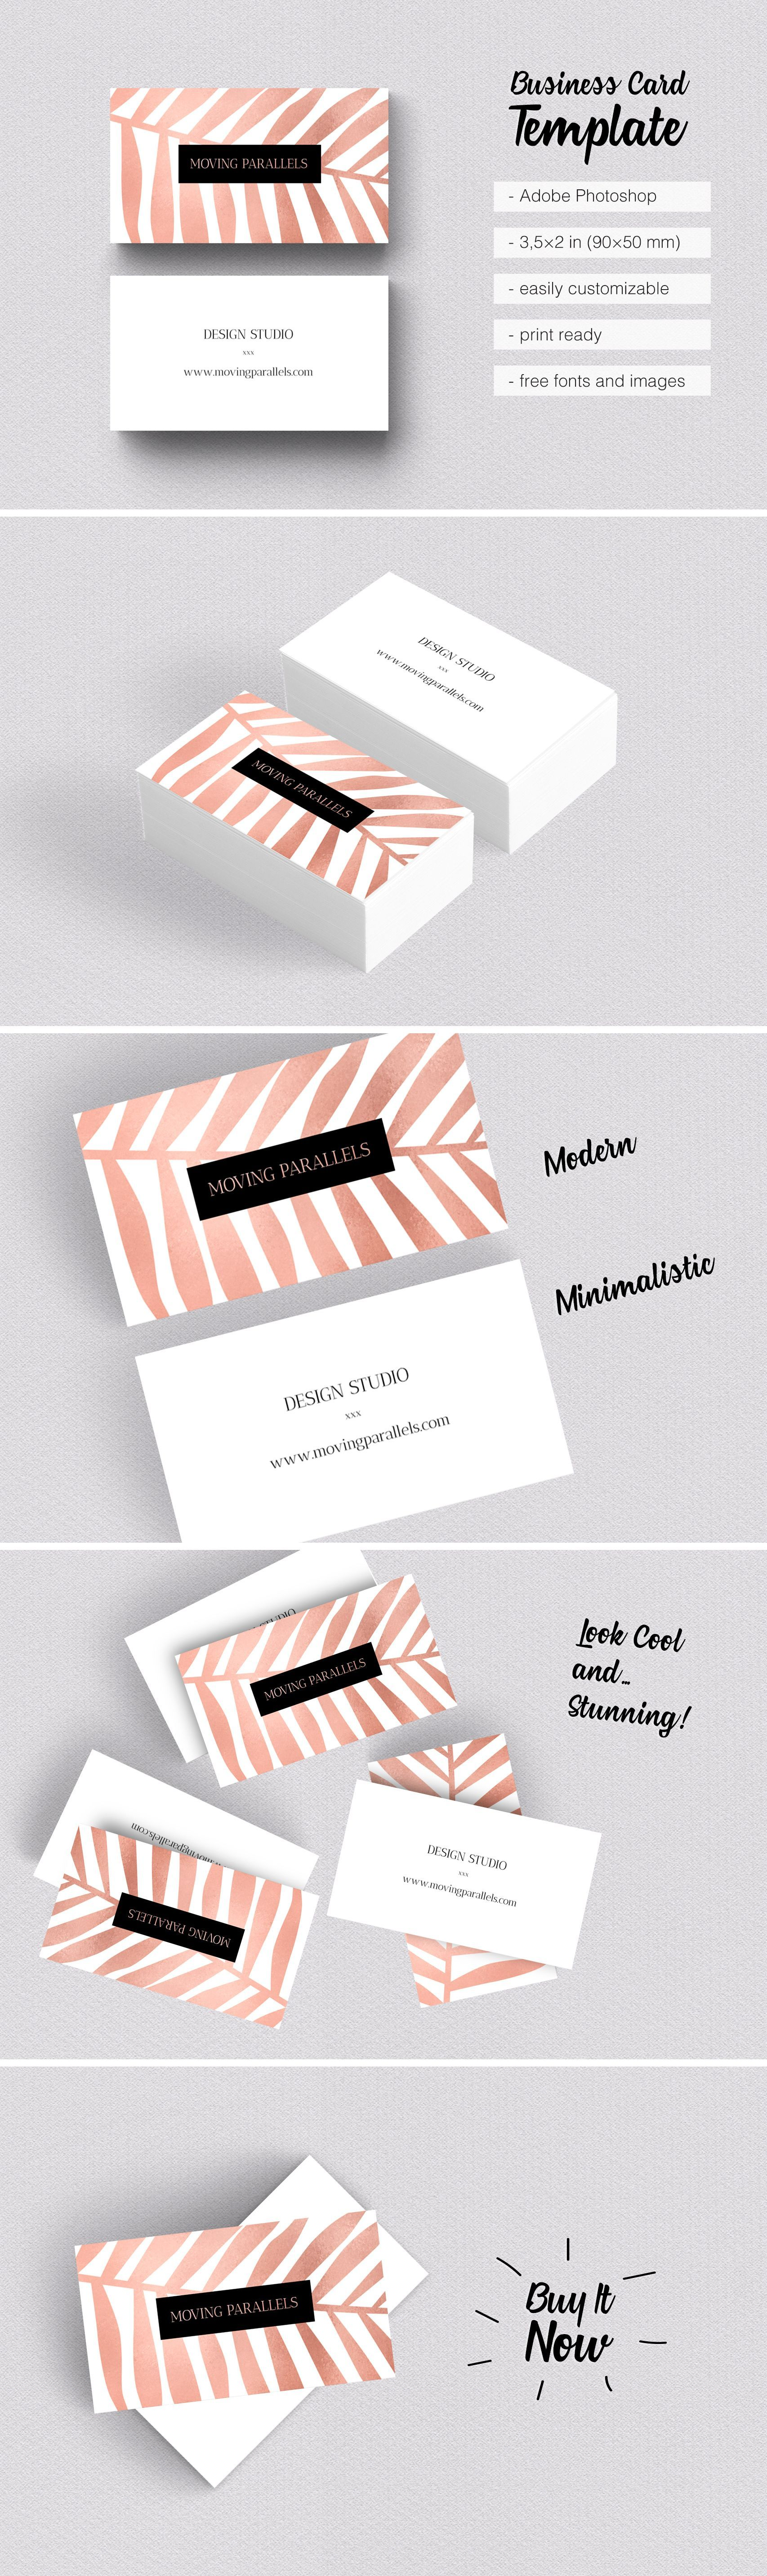 8 rose gold business card etsy is classy sophisticated and 8 rose gold business card etsy is classy sophisticated and elegant visiting card templates reheart Gallery